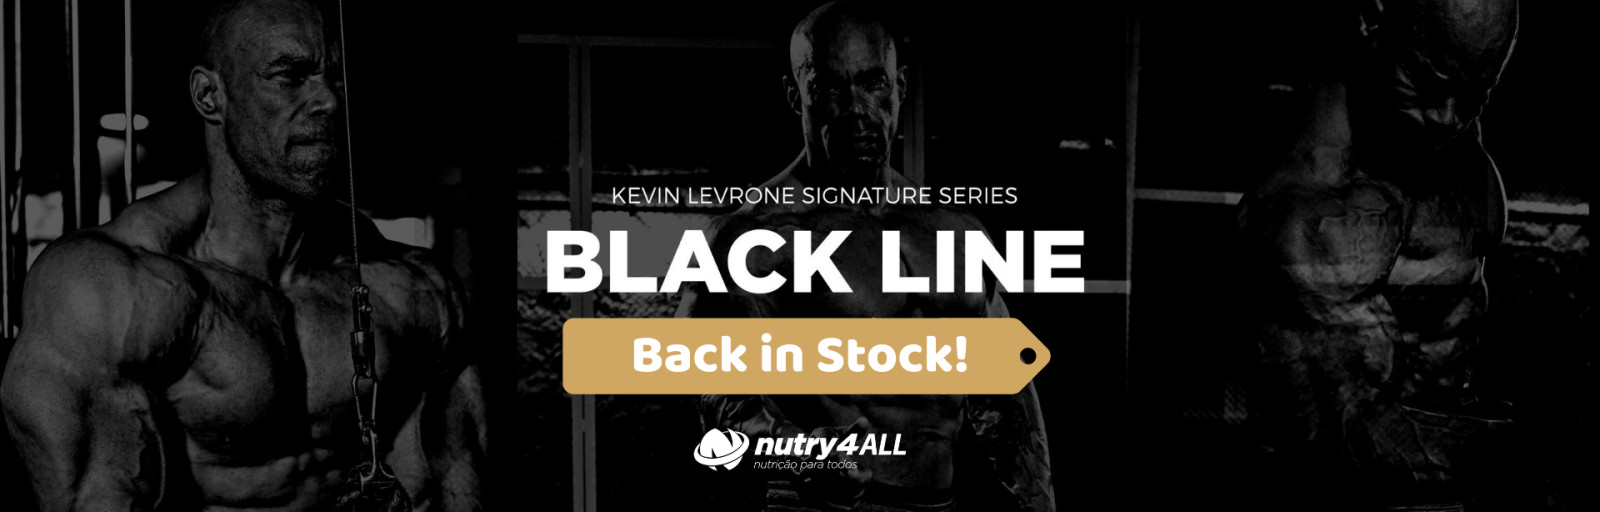 Kevin Levrone Signature Series - BLACK LINE - Back in Stock!